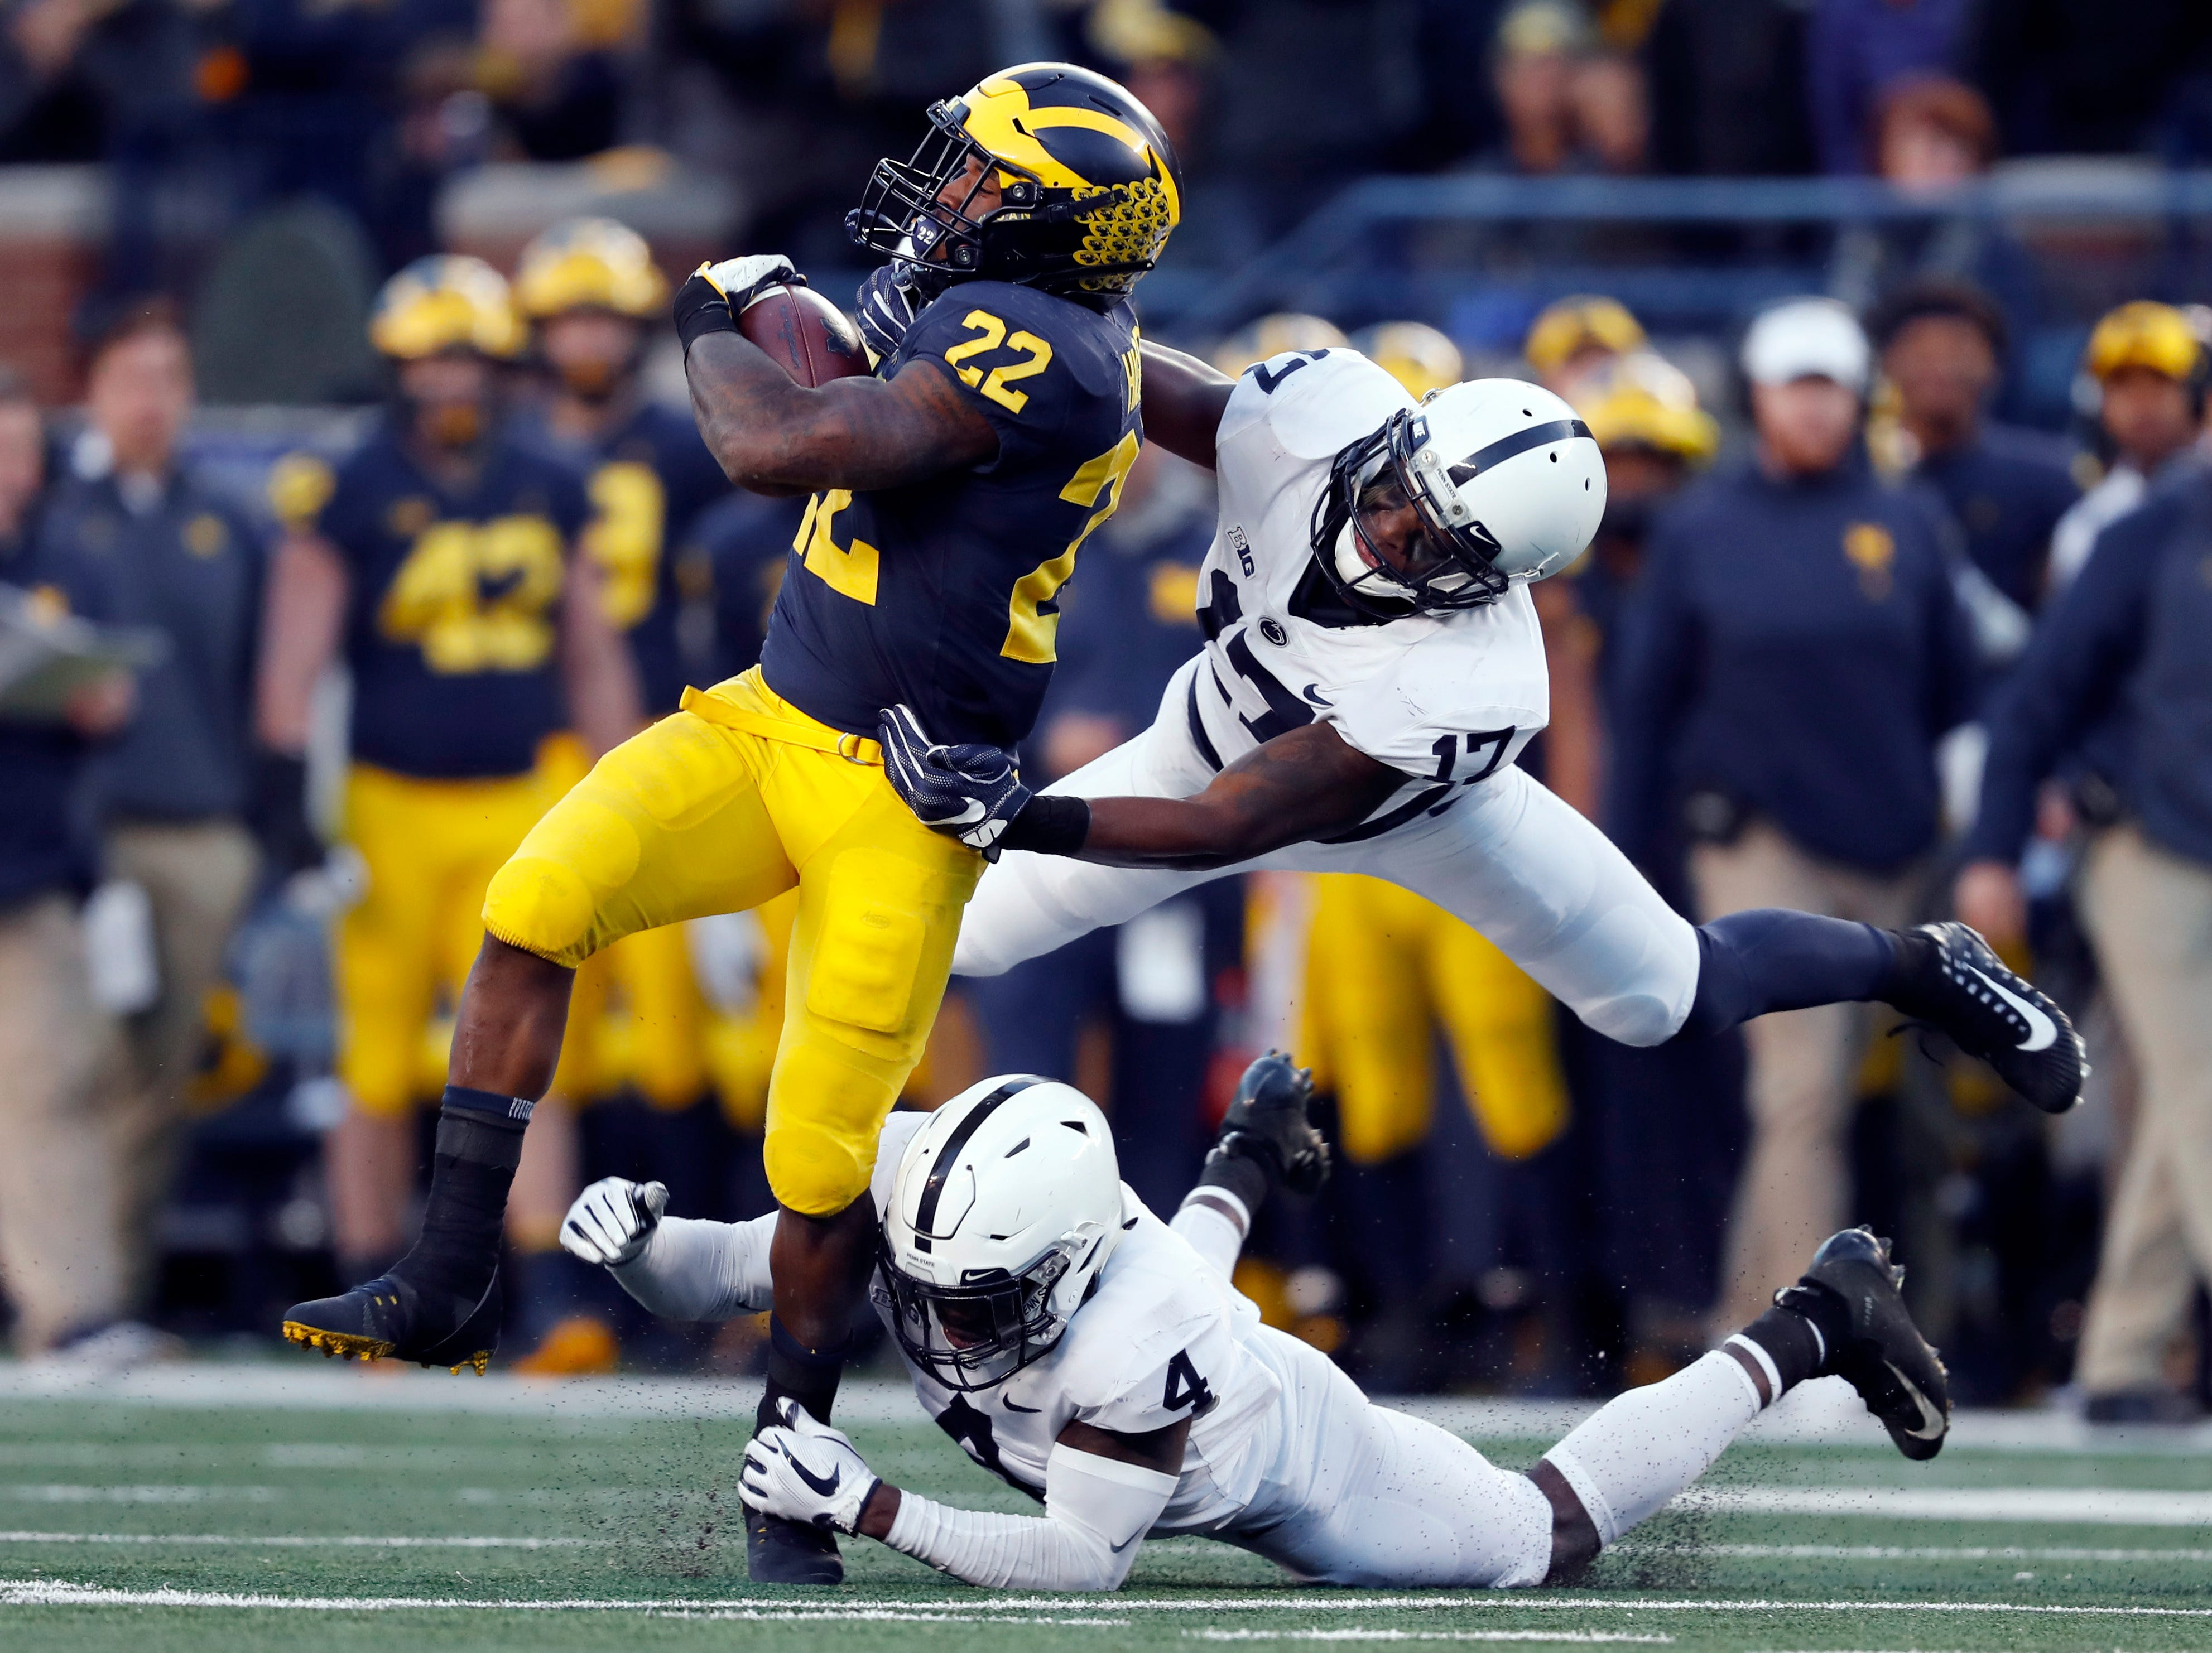 Michigan running back Karan Higdon (22) is tackled by Penn State safety Nick Scott (4) and Garrett Taylor (17) in the second half of an NCAA college football game in Ann Arbor, Mich., Saturday, Nov. 3, 2018. (AP Photo/Paul Sancya)